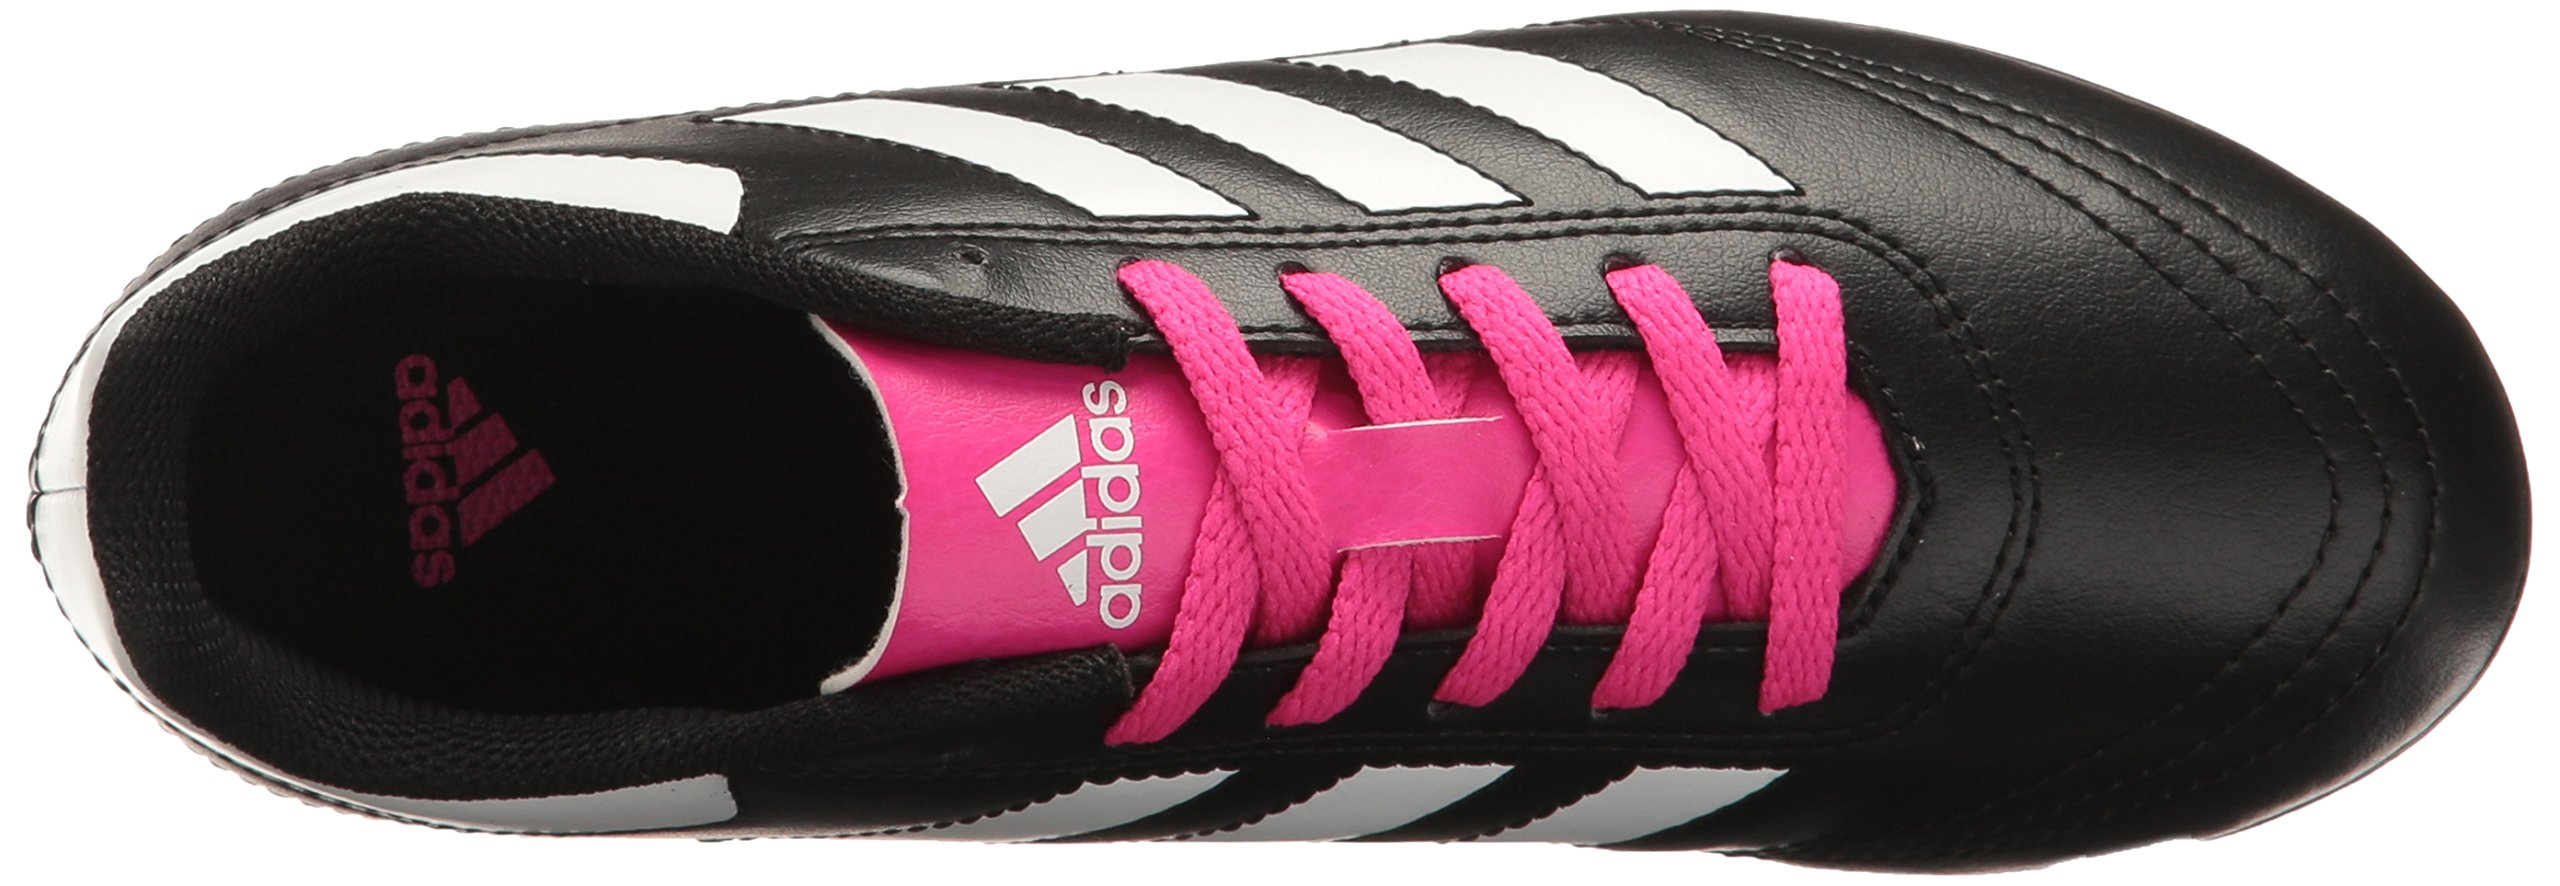 quality design b331e 61aa2 adidas Kids Goletto VI J Firm Ground Soccer Cleats - 145  Soccer   Clothing, Shoes  Jewelry - tibs